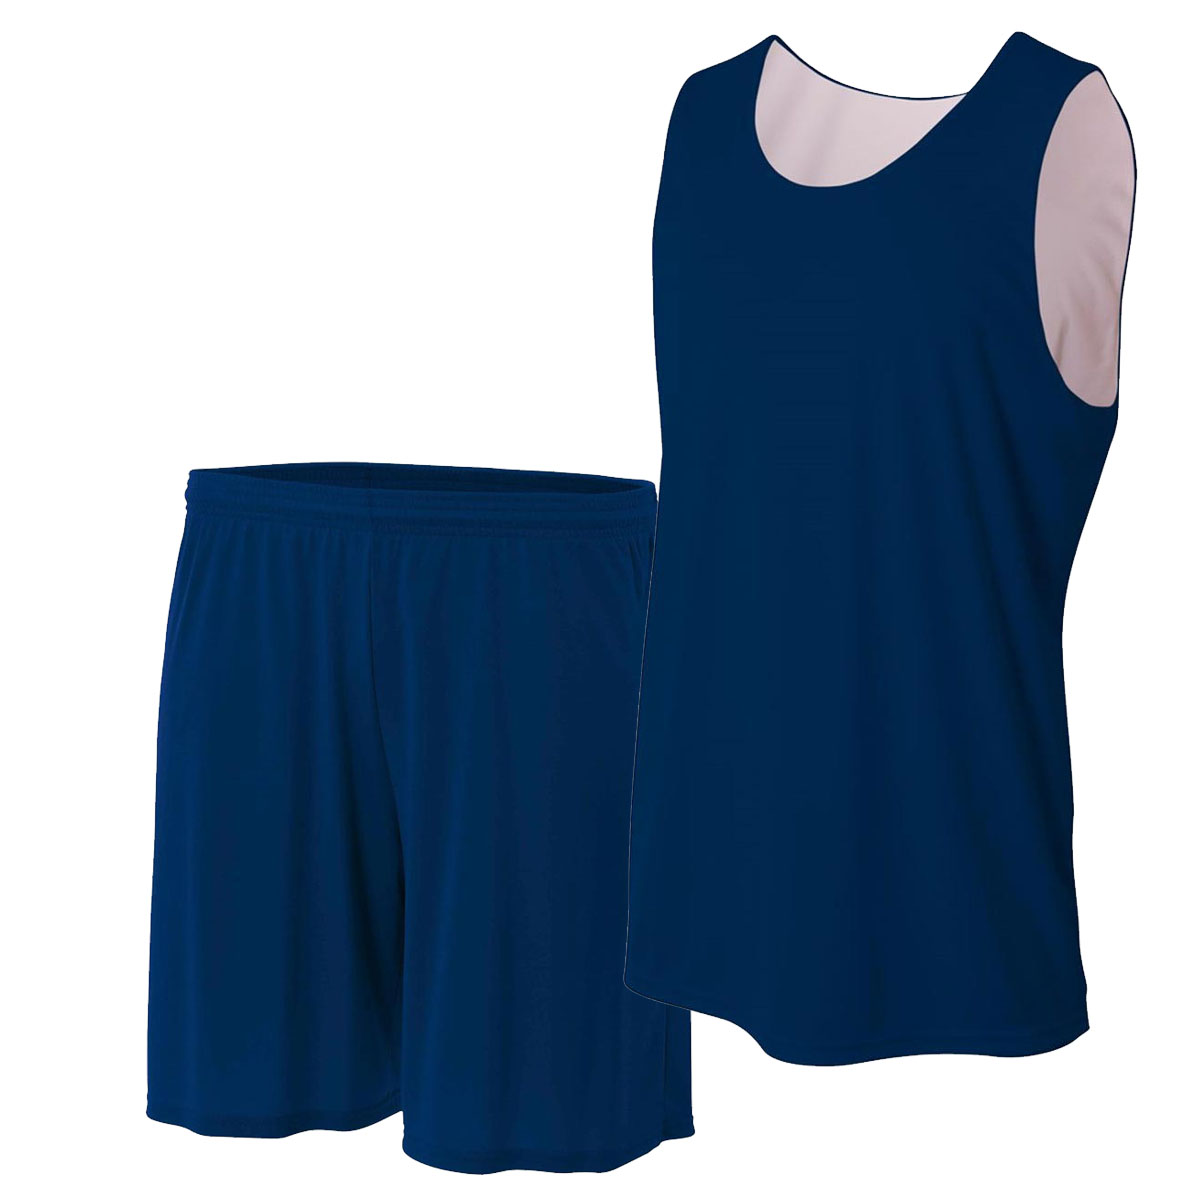 Reversible Basketball Uniforms Manufacturers in Australia